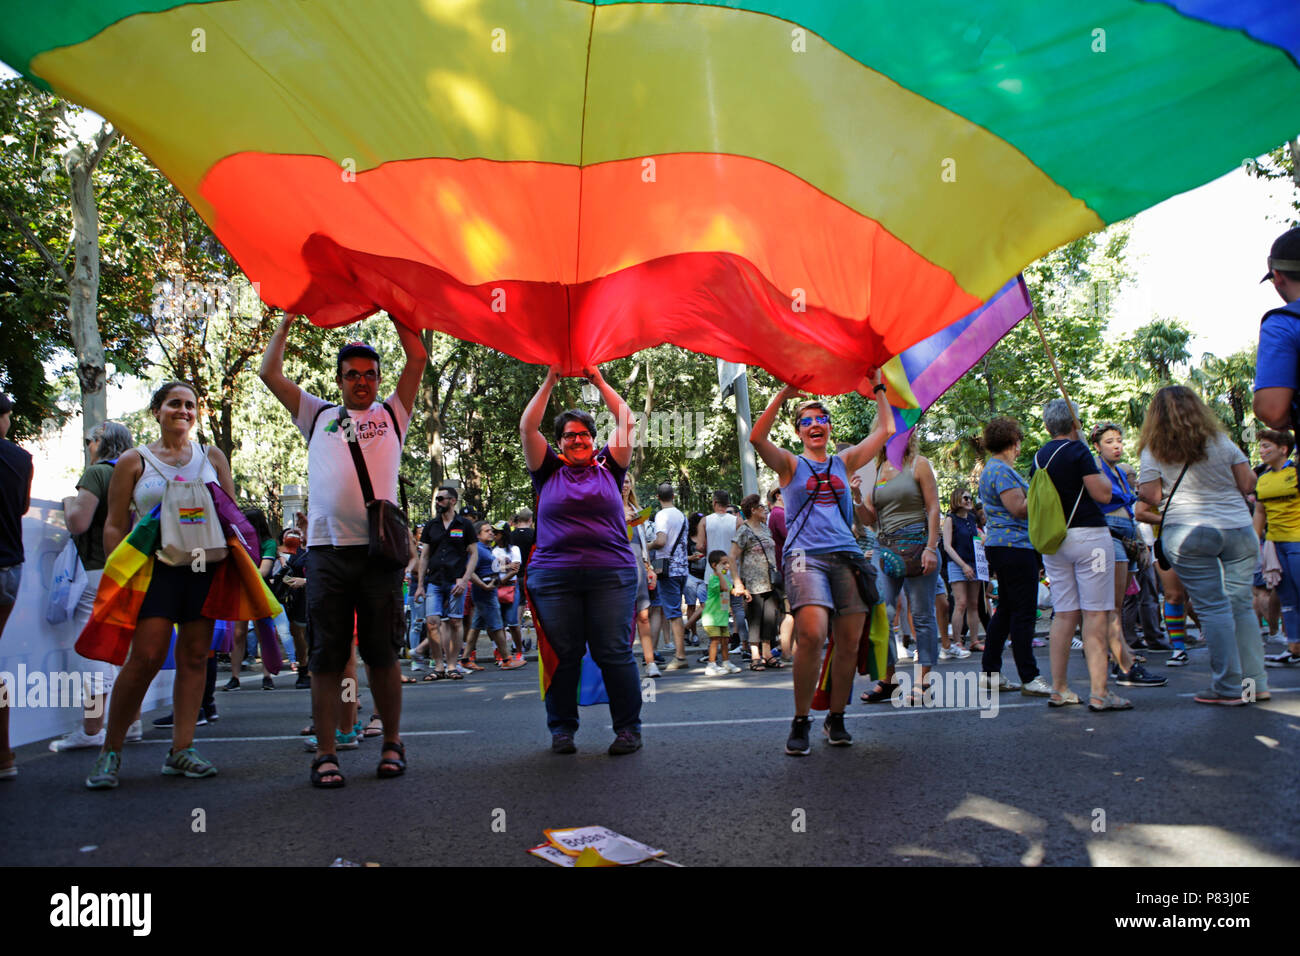 Multicolor flag, symbol of the LGTBI seen being carried by a group of peopla during the 2018 Pride Parade. Thousands of people has been filling the streets and avenues of Madrid on a sunny day for the 2018 gay pride parade after still struggling for gay rights around the world. - Stock Image